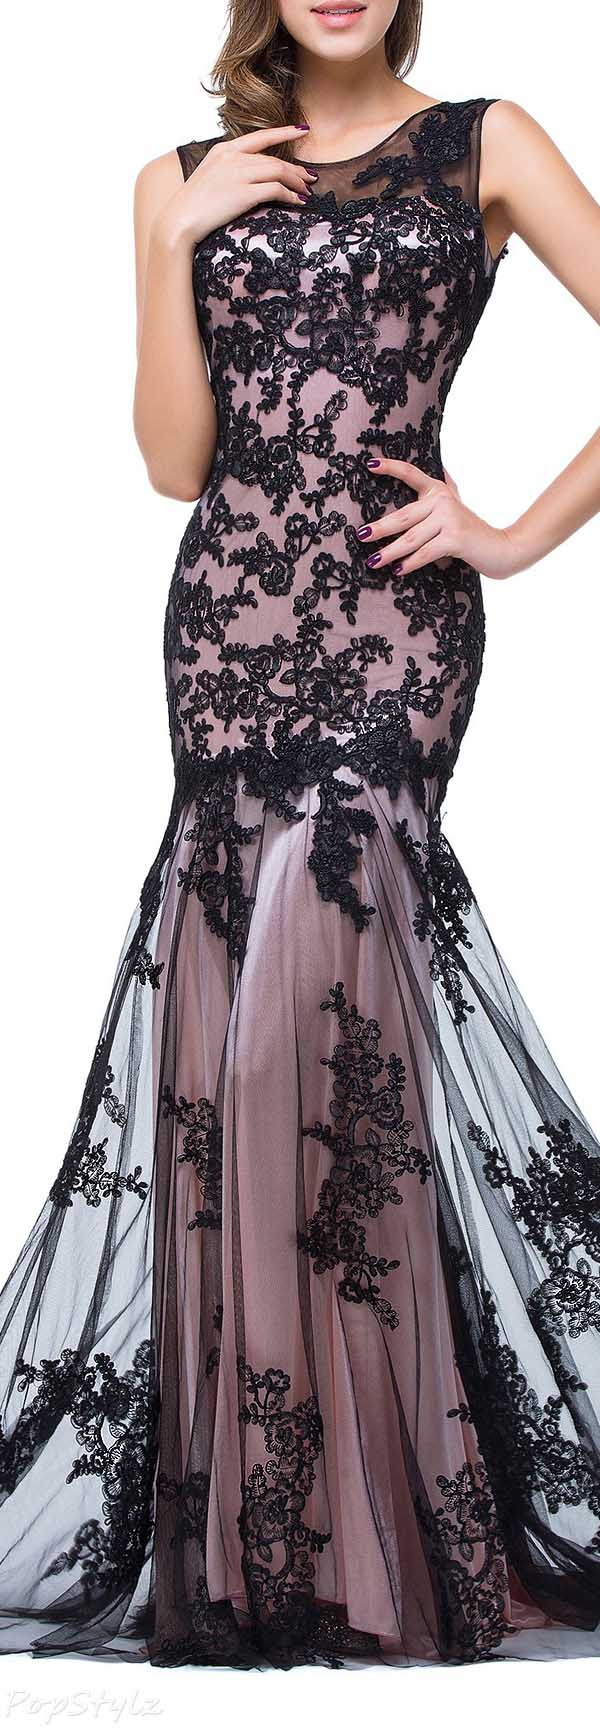 Babyonline Tulle with Black Lace Applique Mermaid Gown